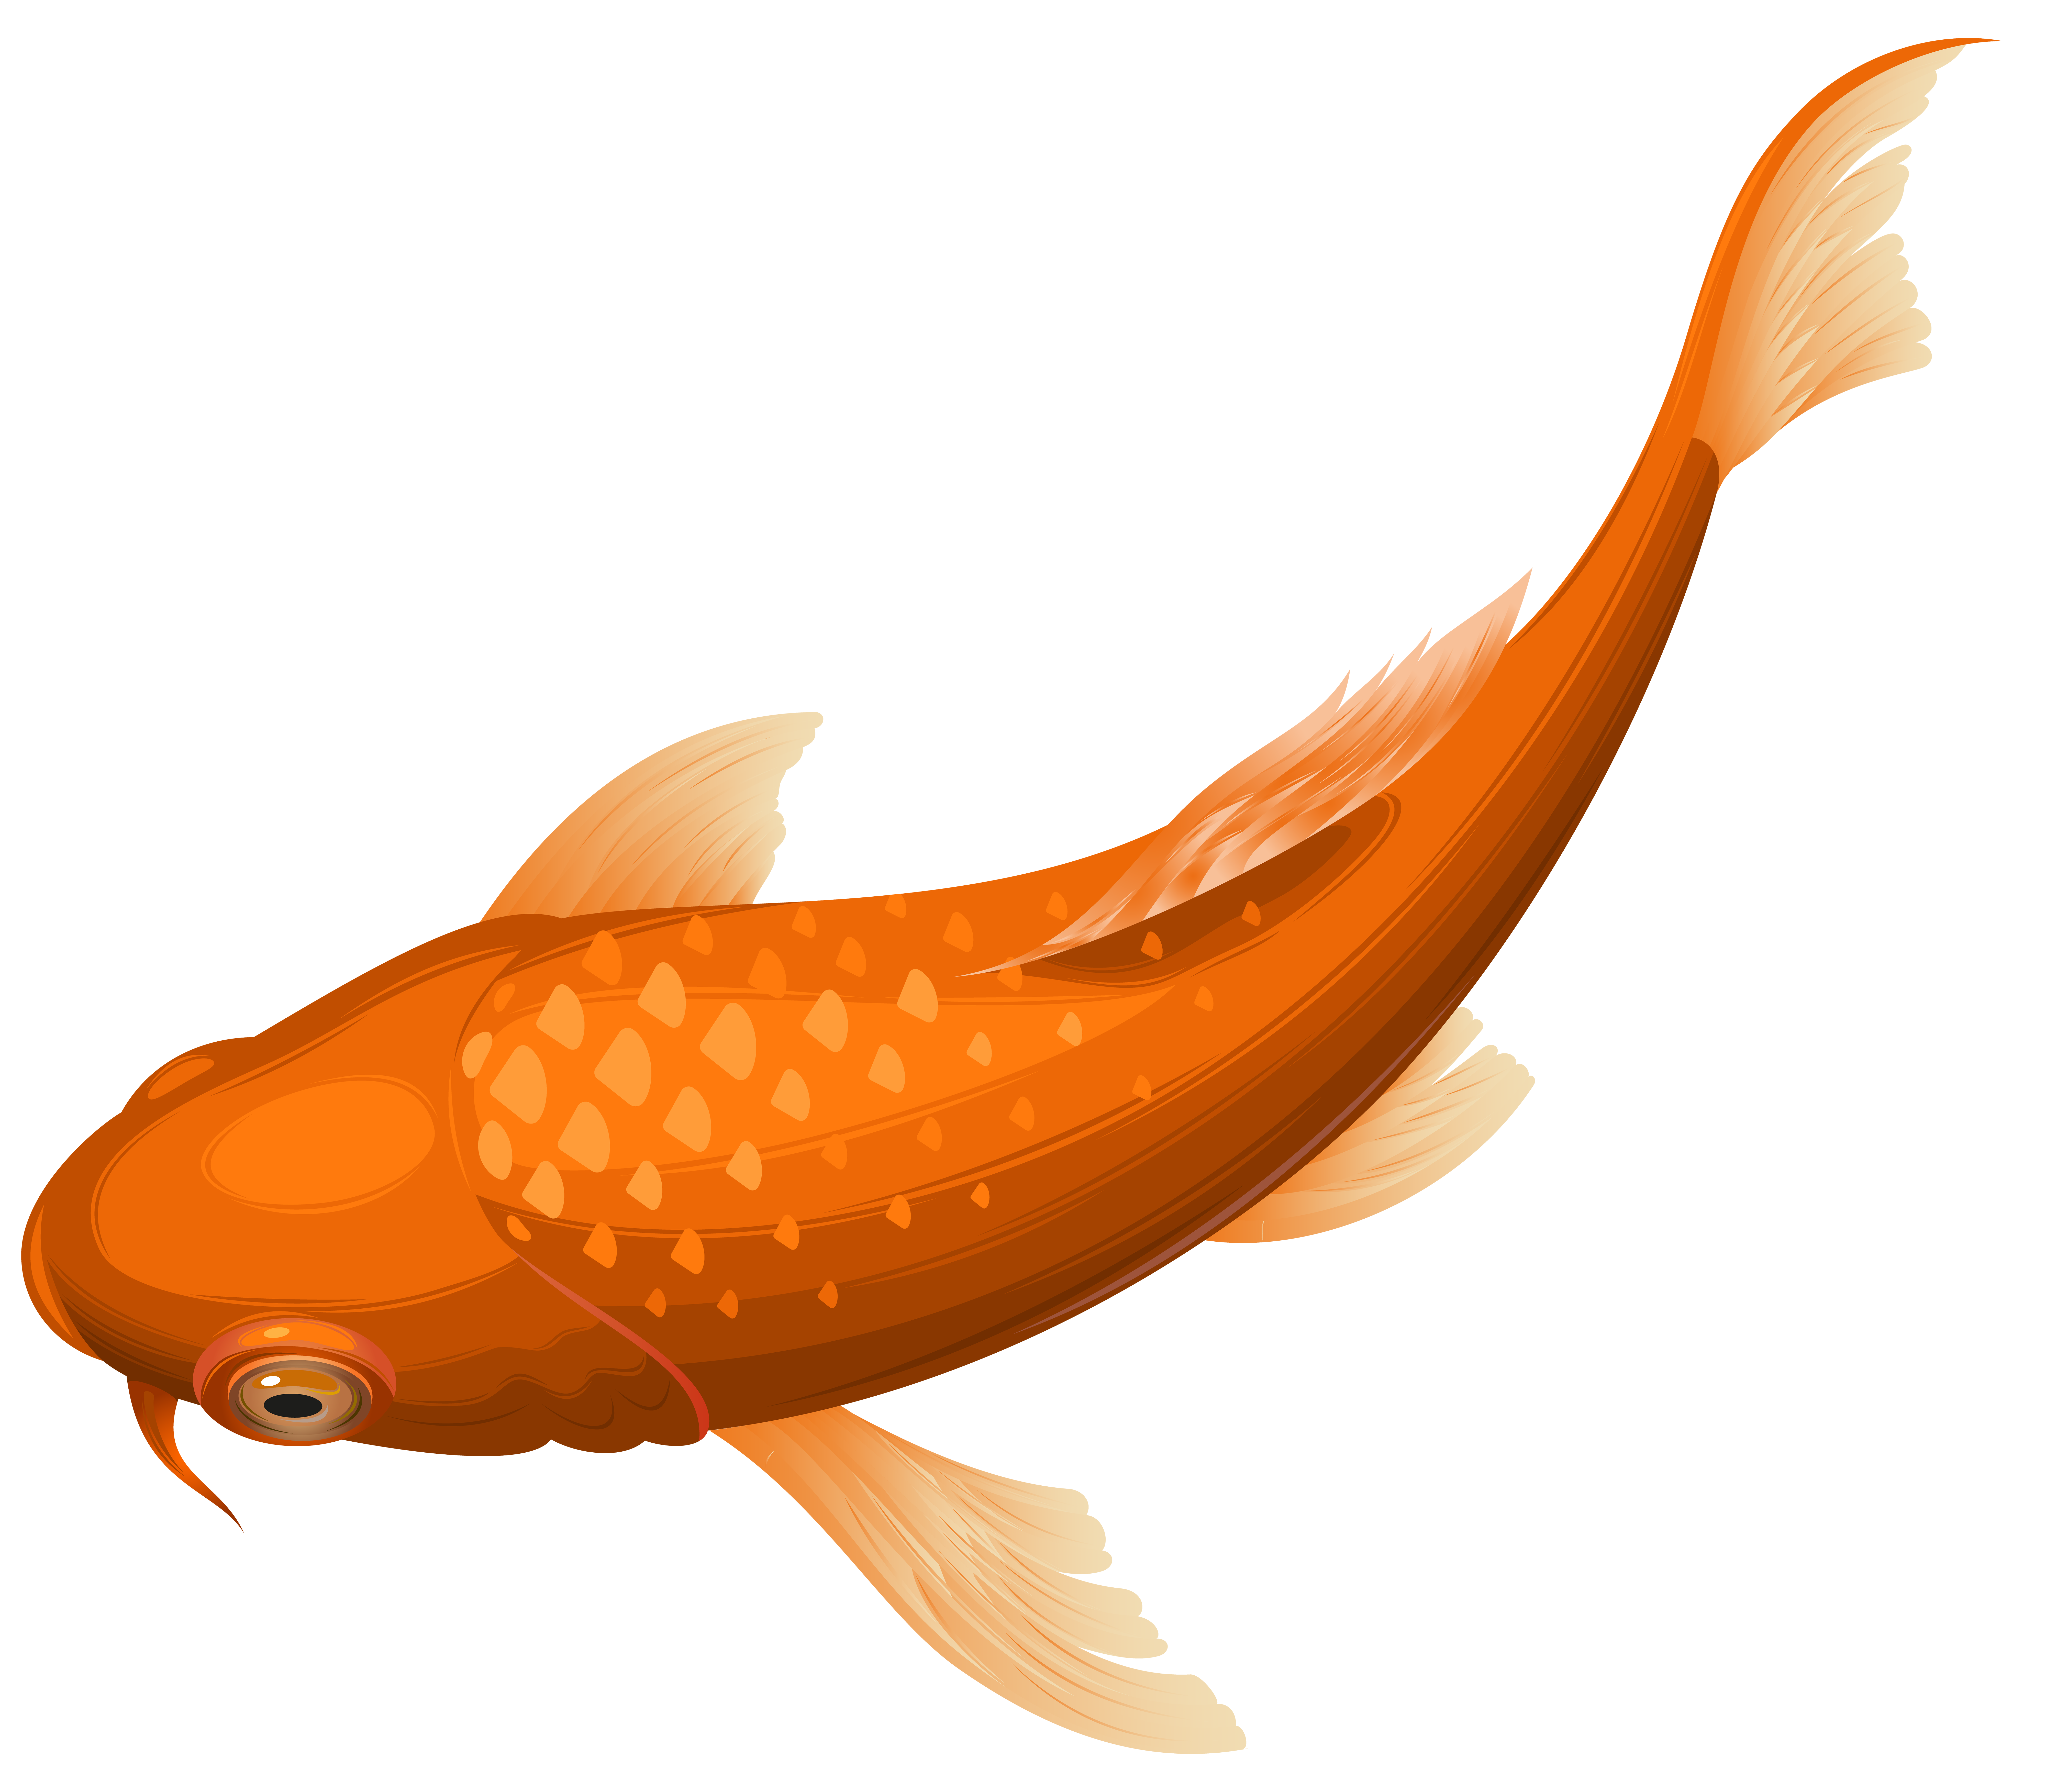 Clipart koi fish image transparent Orange Koi Fish Transparent Clip Art PNG Image | Gallery ... image transparent